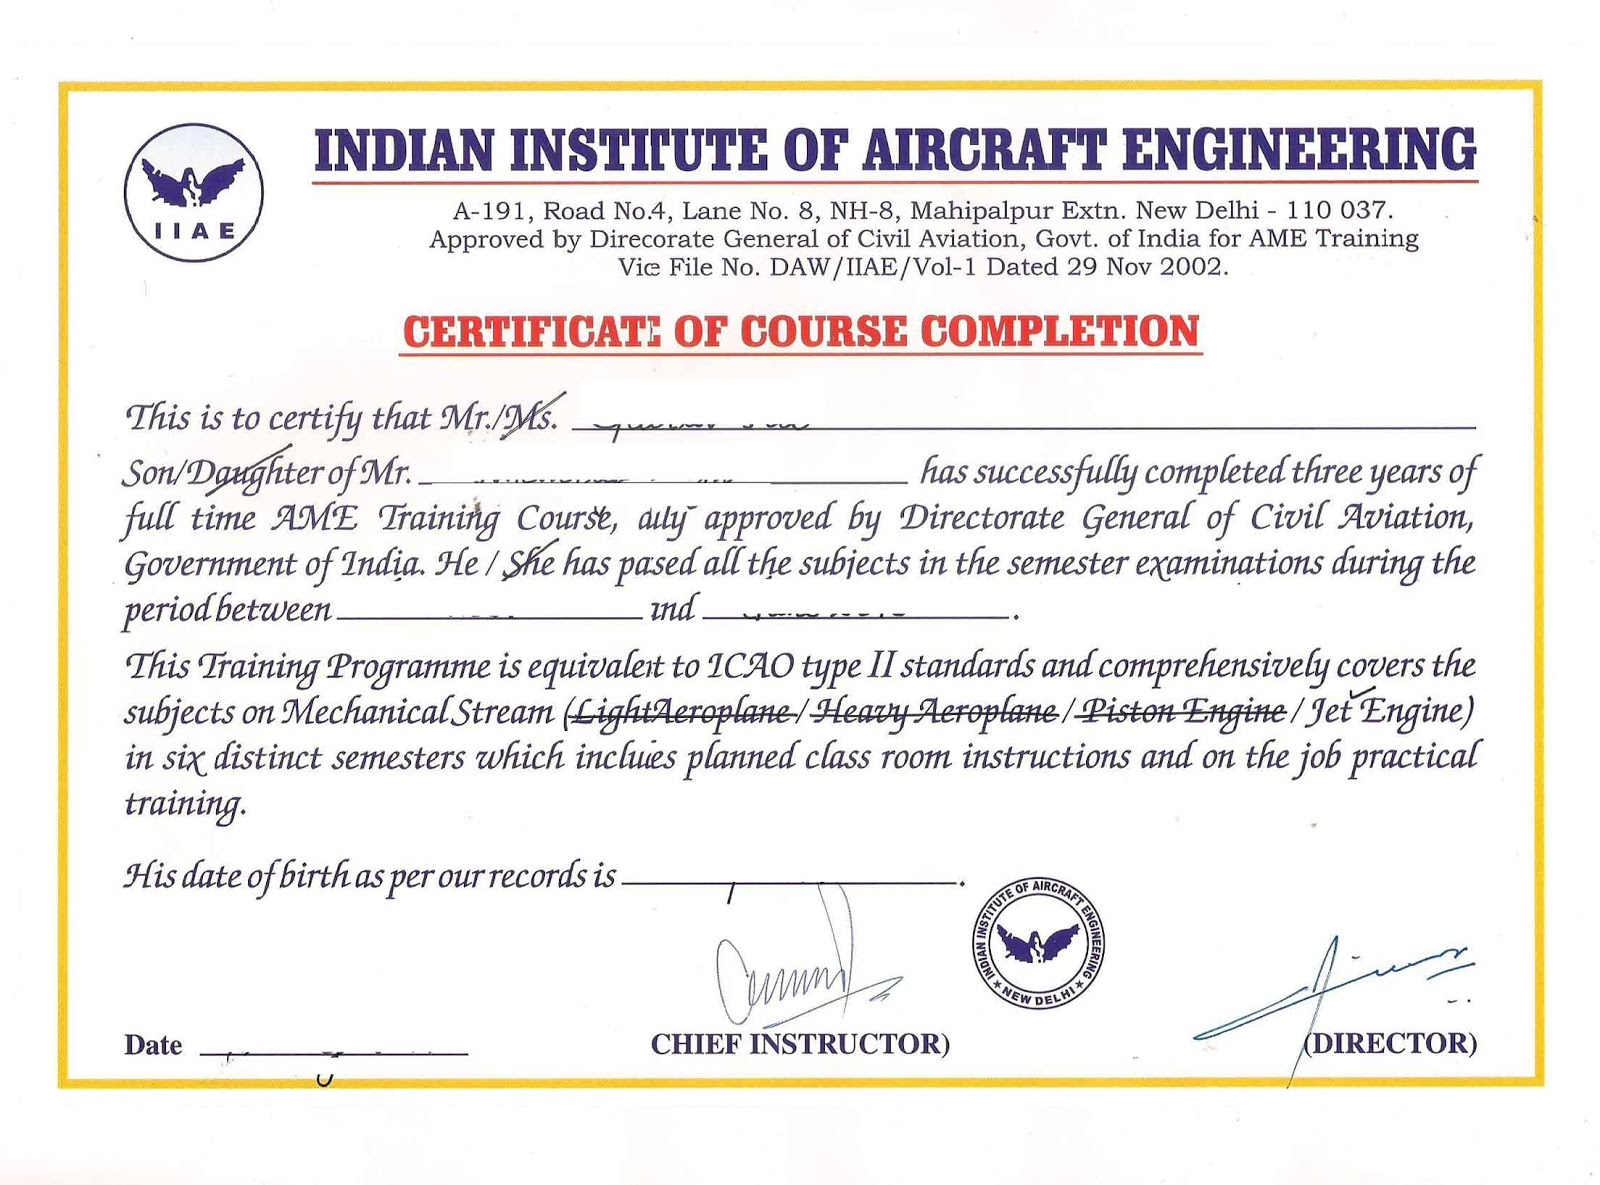 Superb AME Certificate Of Course Completion Sample Regarding Course Completion Certificate Format